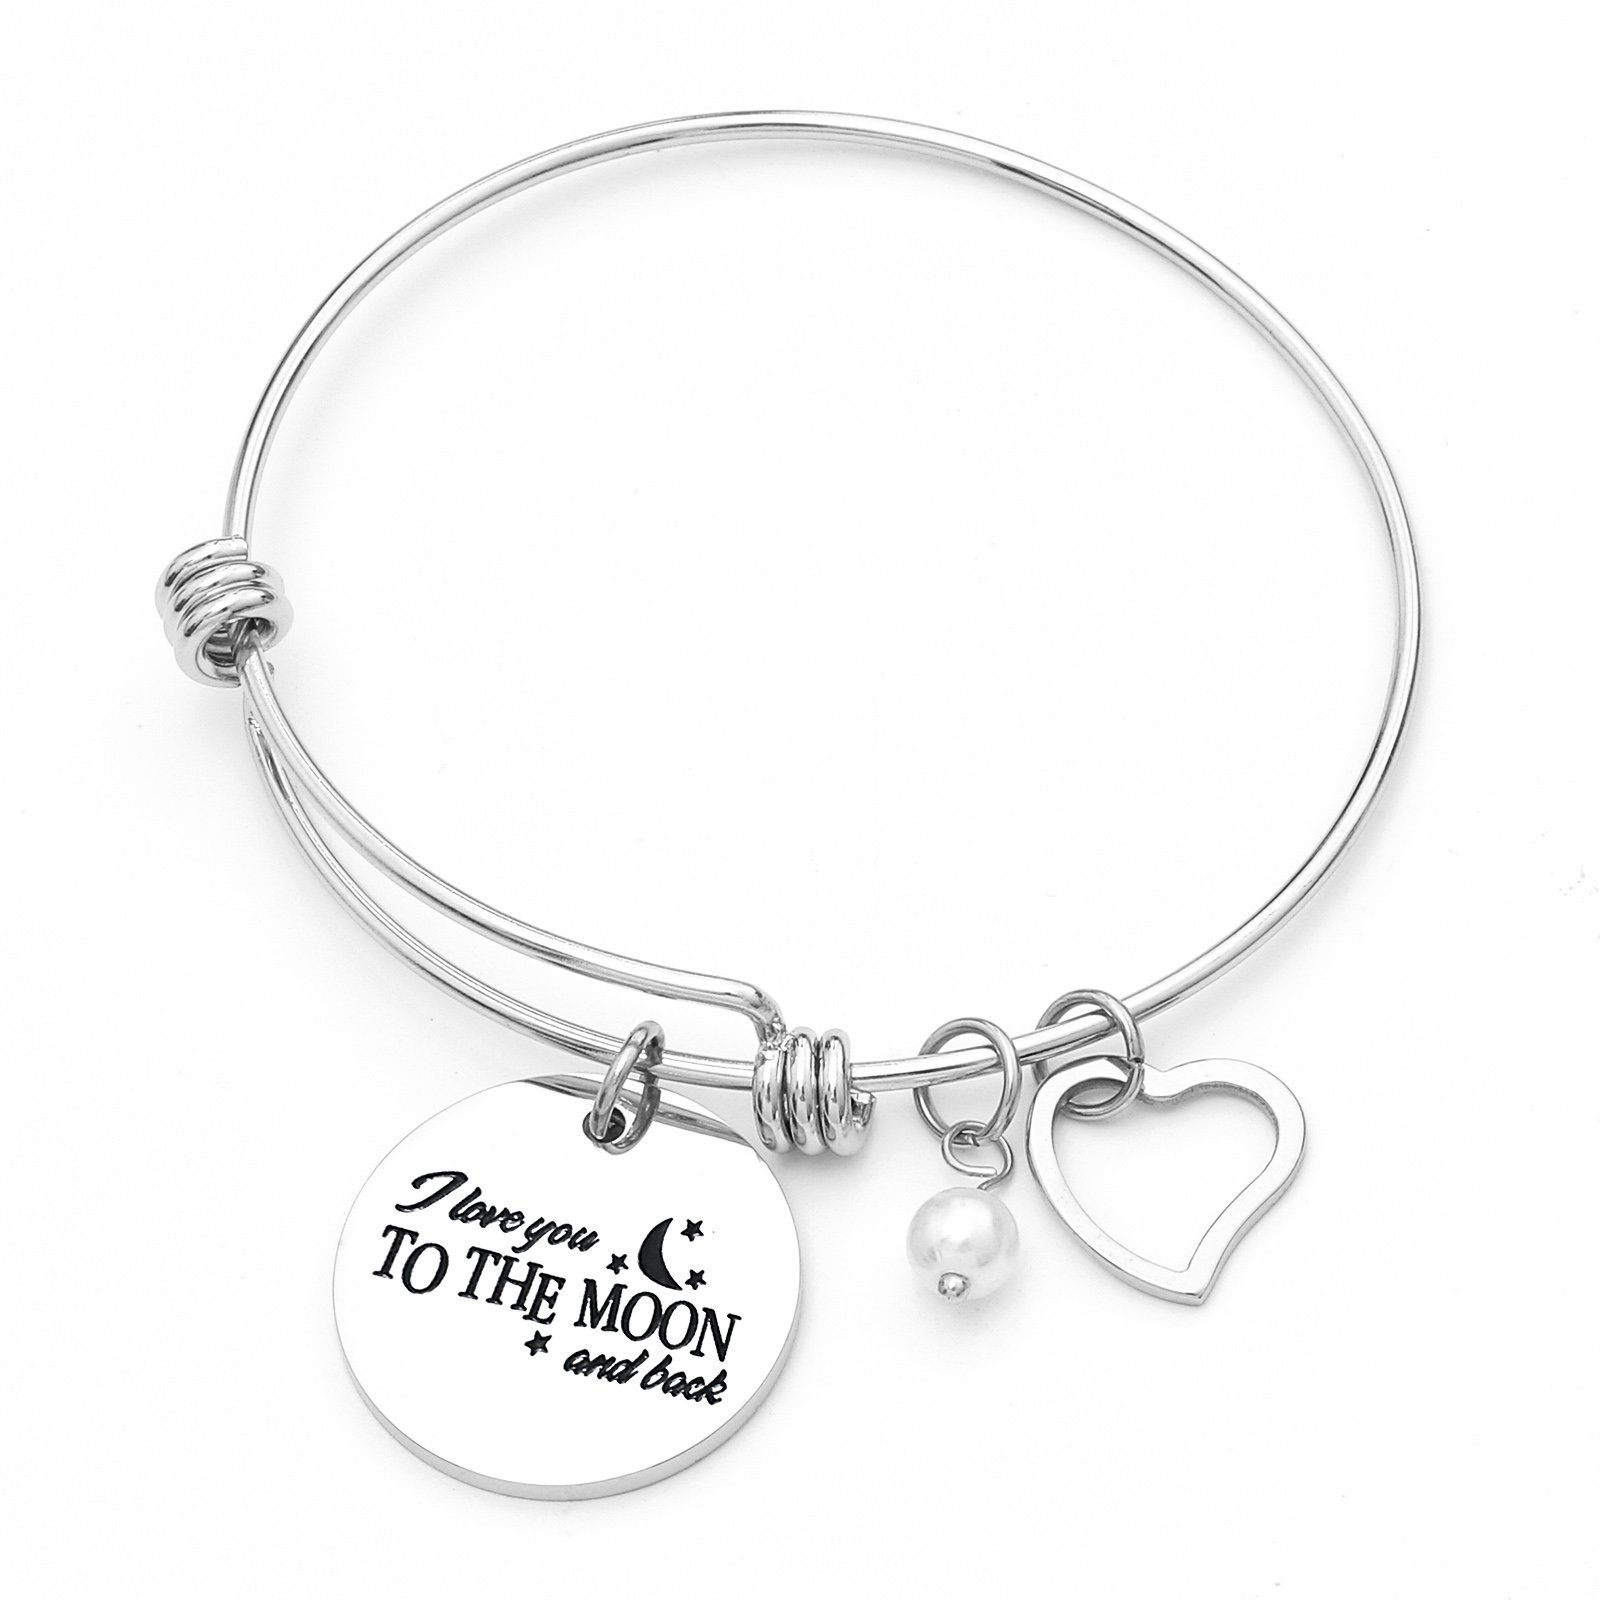 Sunflower Jewellery Love Charm Braceklet I Love You To The Moon And Back Pearl Adjustable Bangle Silver